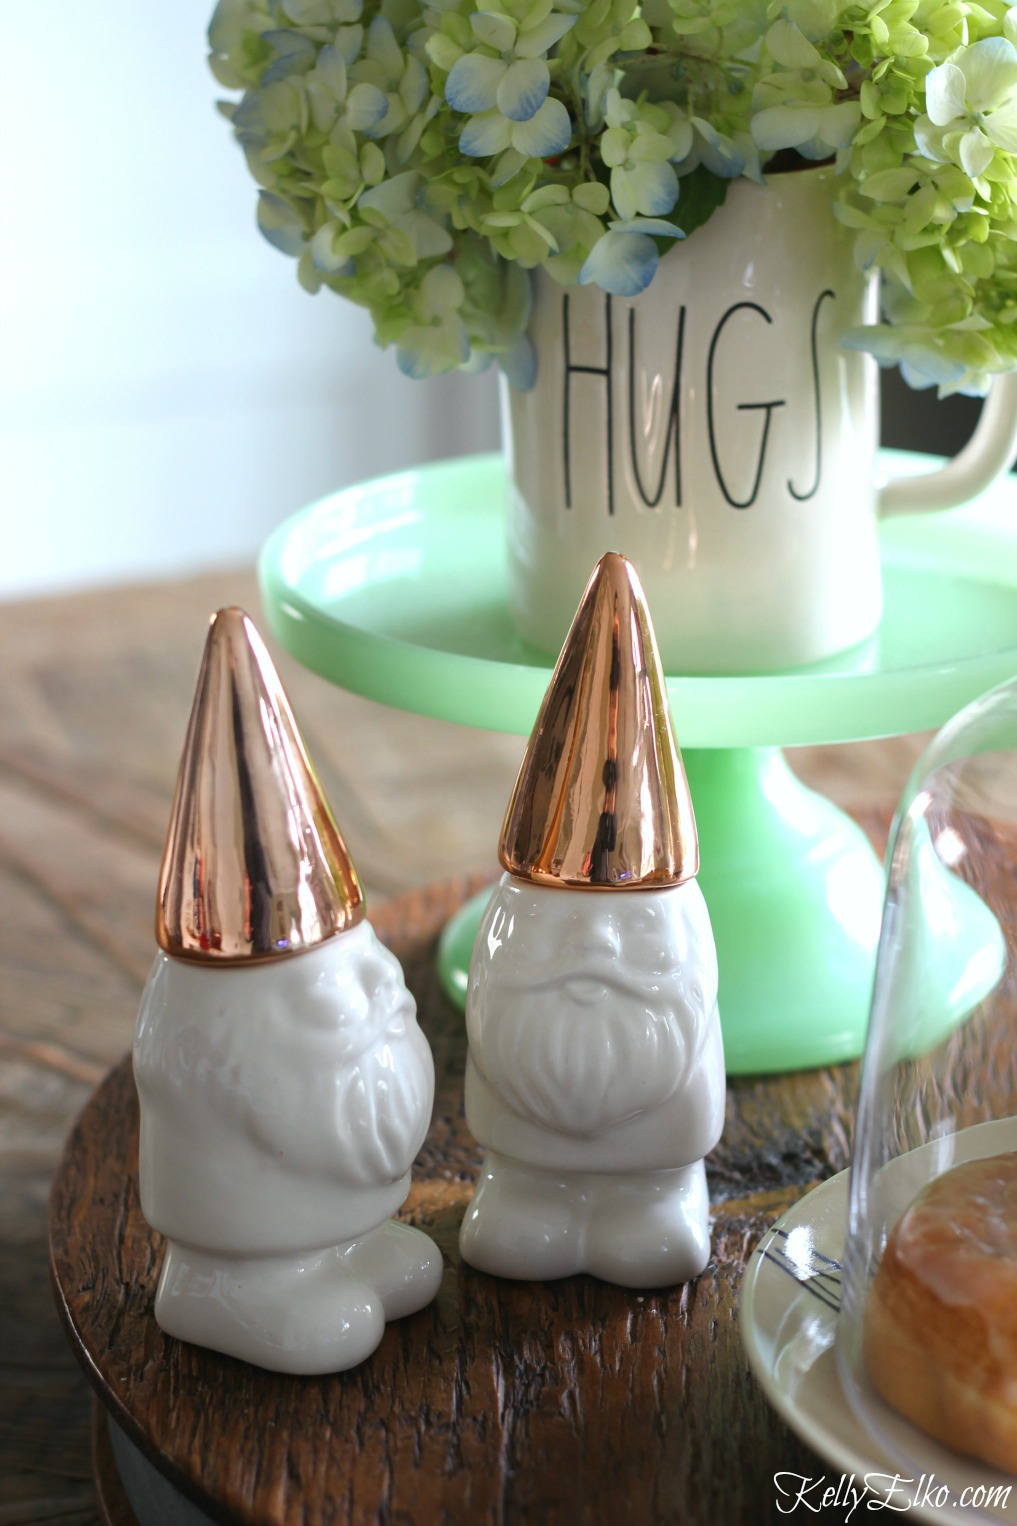 How cute is this pair of gnome salt and pepper shakers with gold hats kellyelko.com